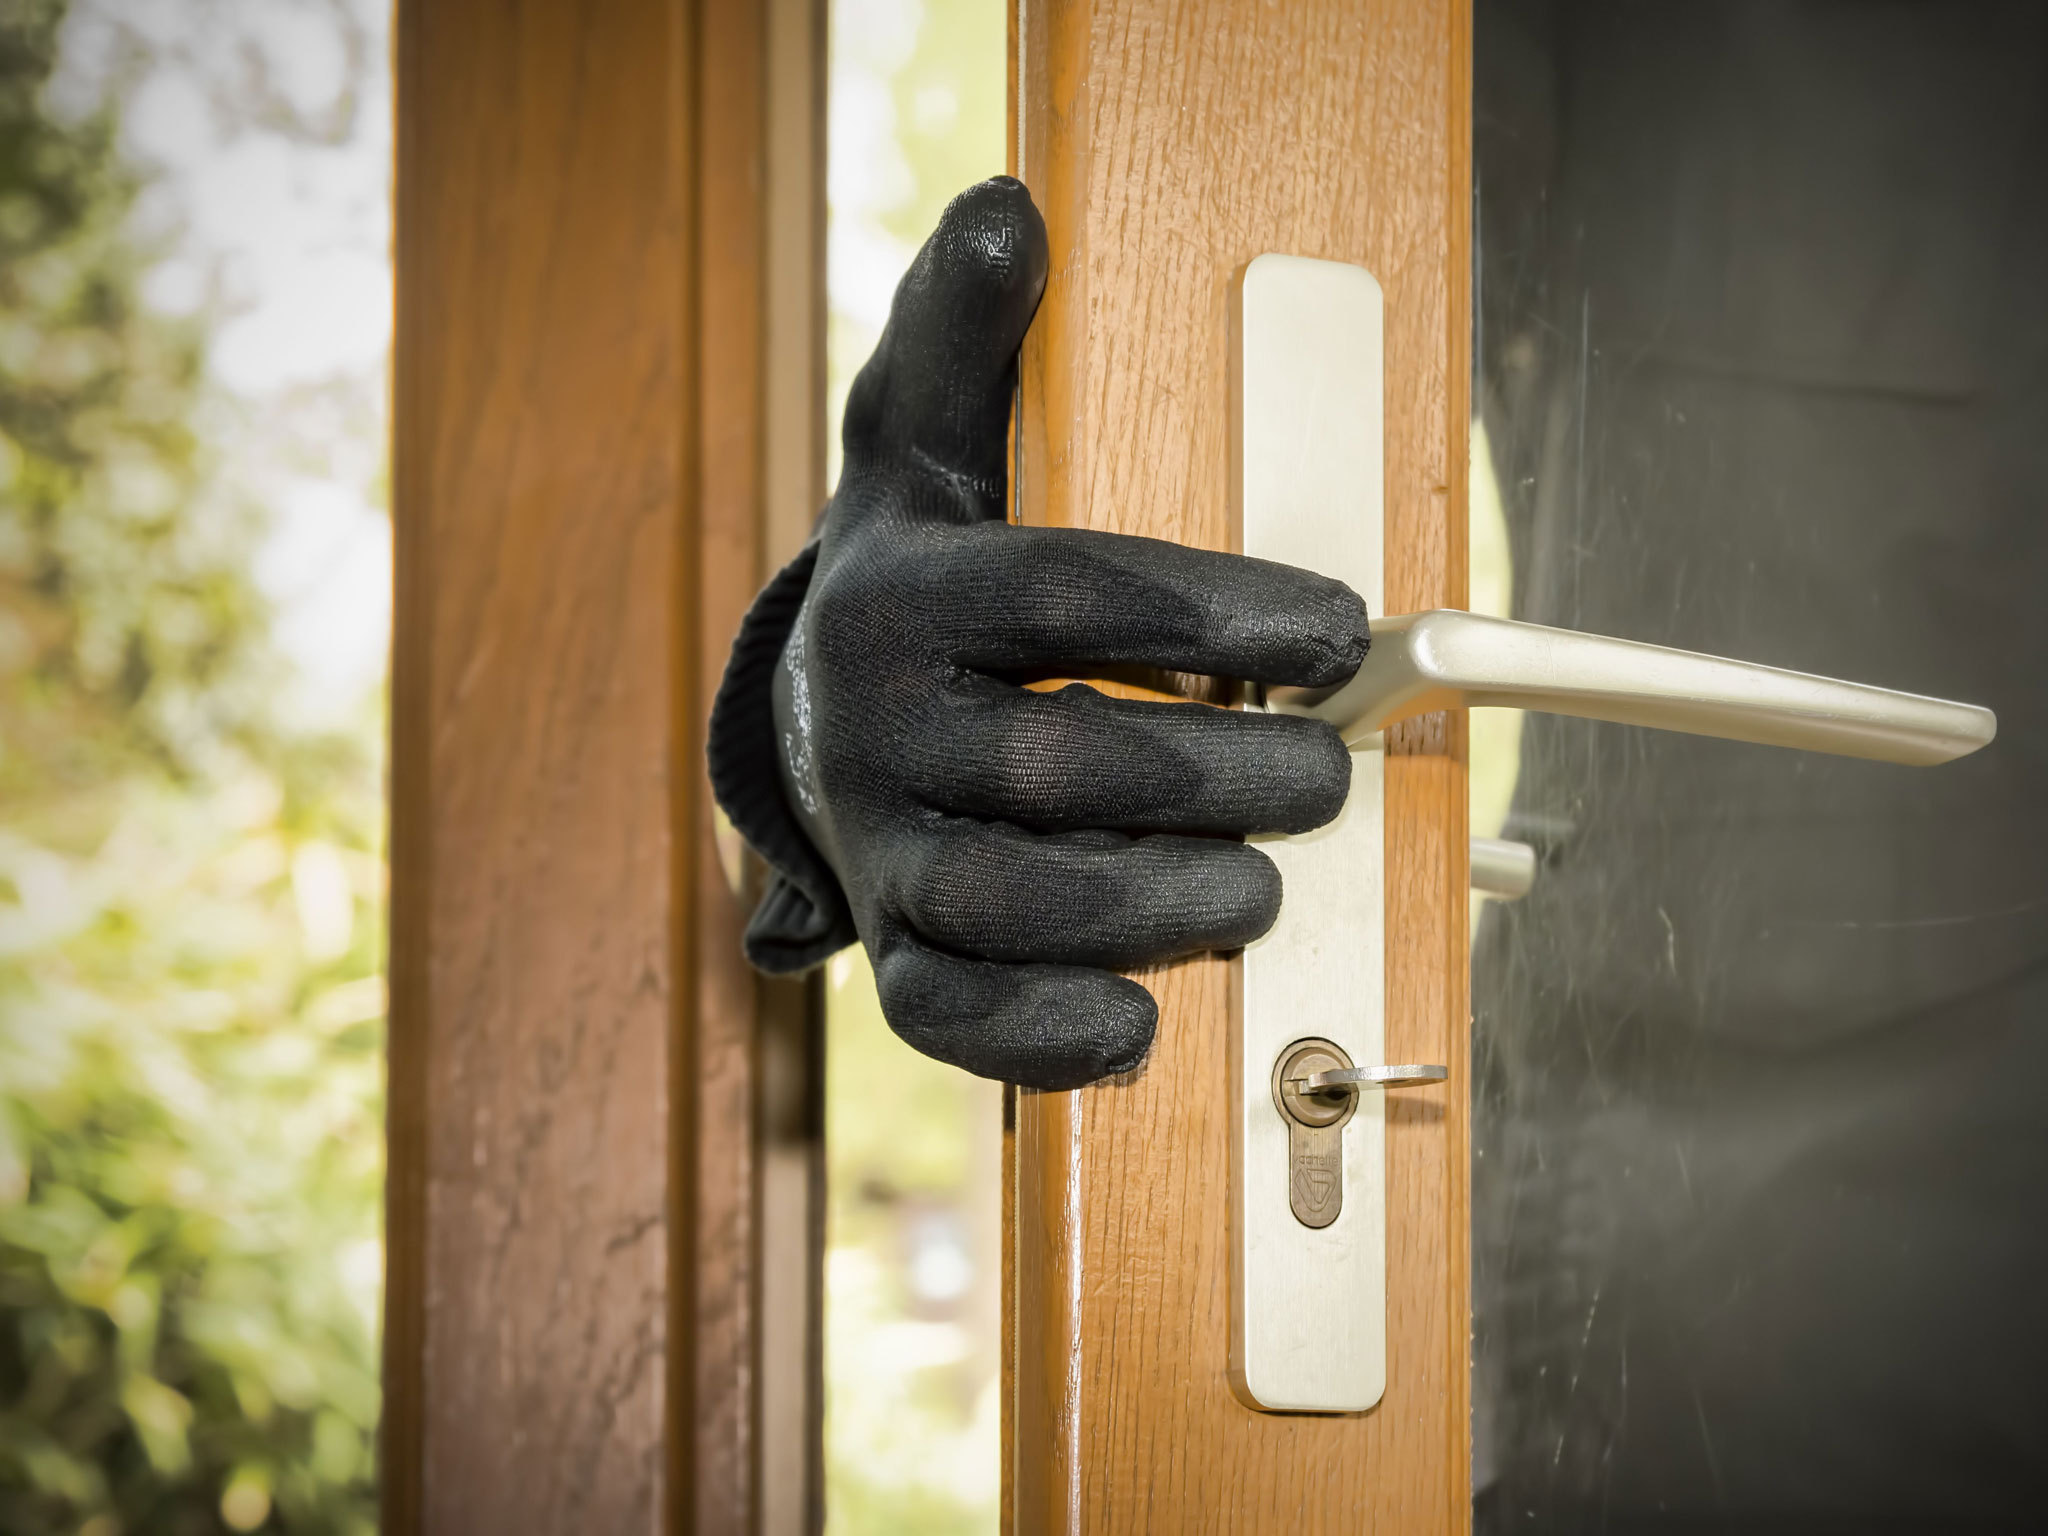 The Metropolitan police's #BeSafe campaign will show residents how simple measures can help prevent burglaries.